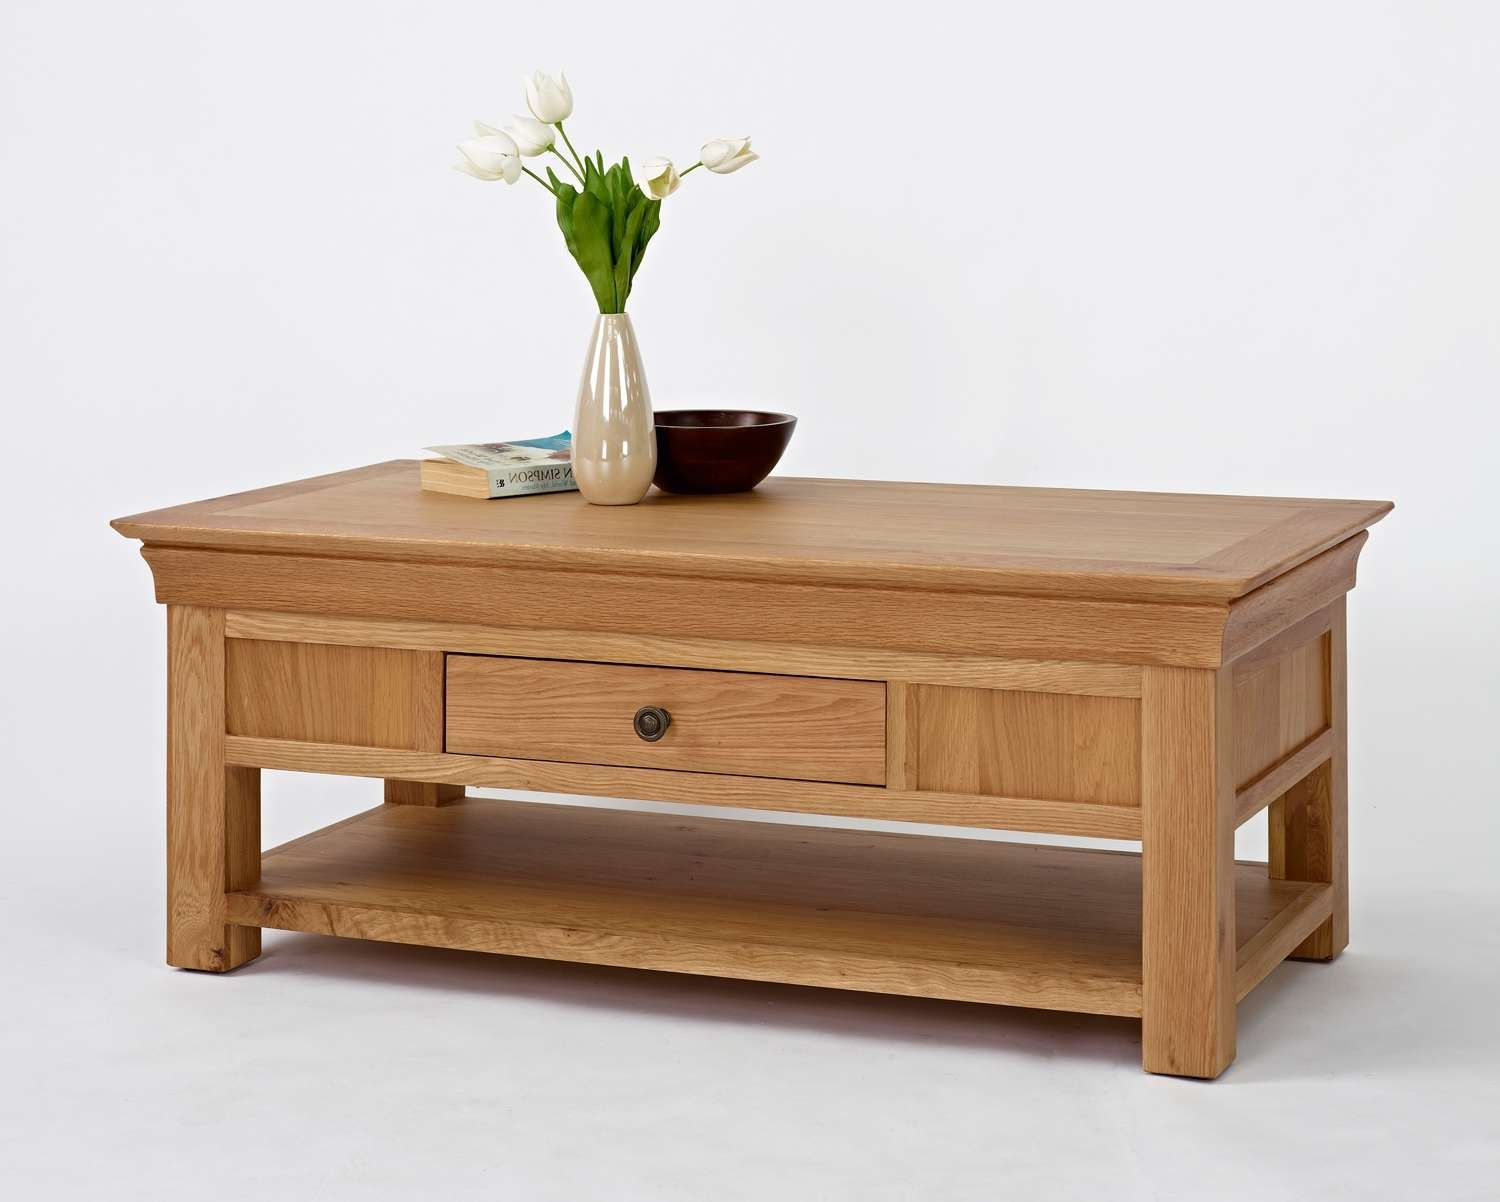 Trendy Oak Veneer Coffee Tables Inside Wimereux Oak Coffee Table With Shelf & Drawer, Uniques Furniture Shop (View 6 of 20)